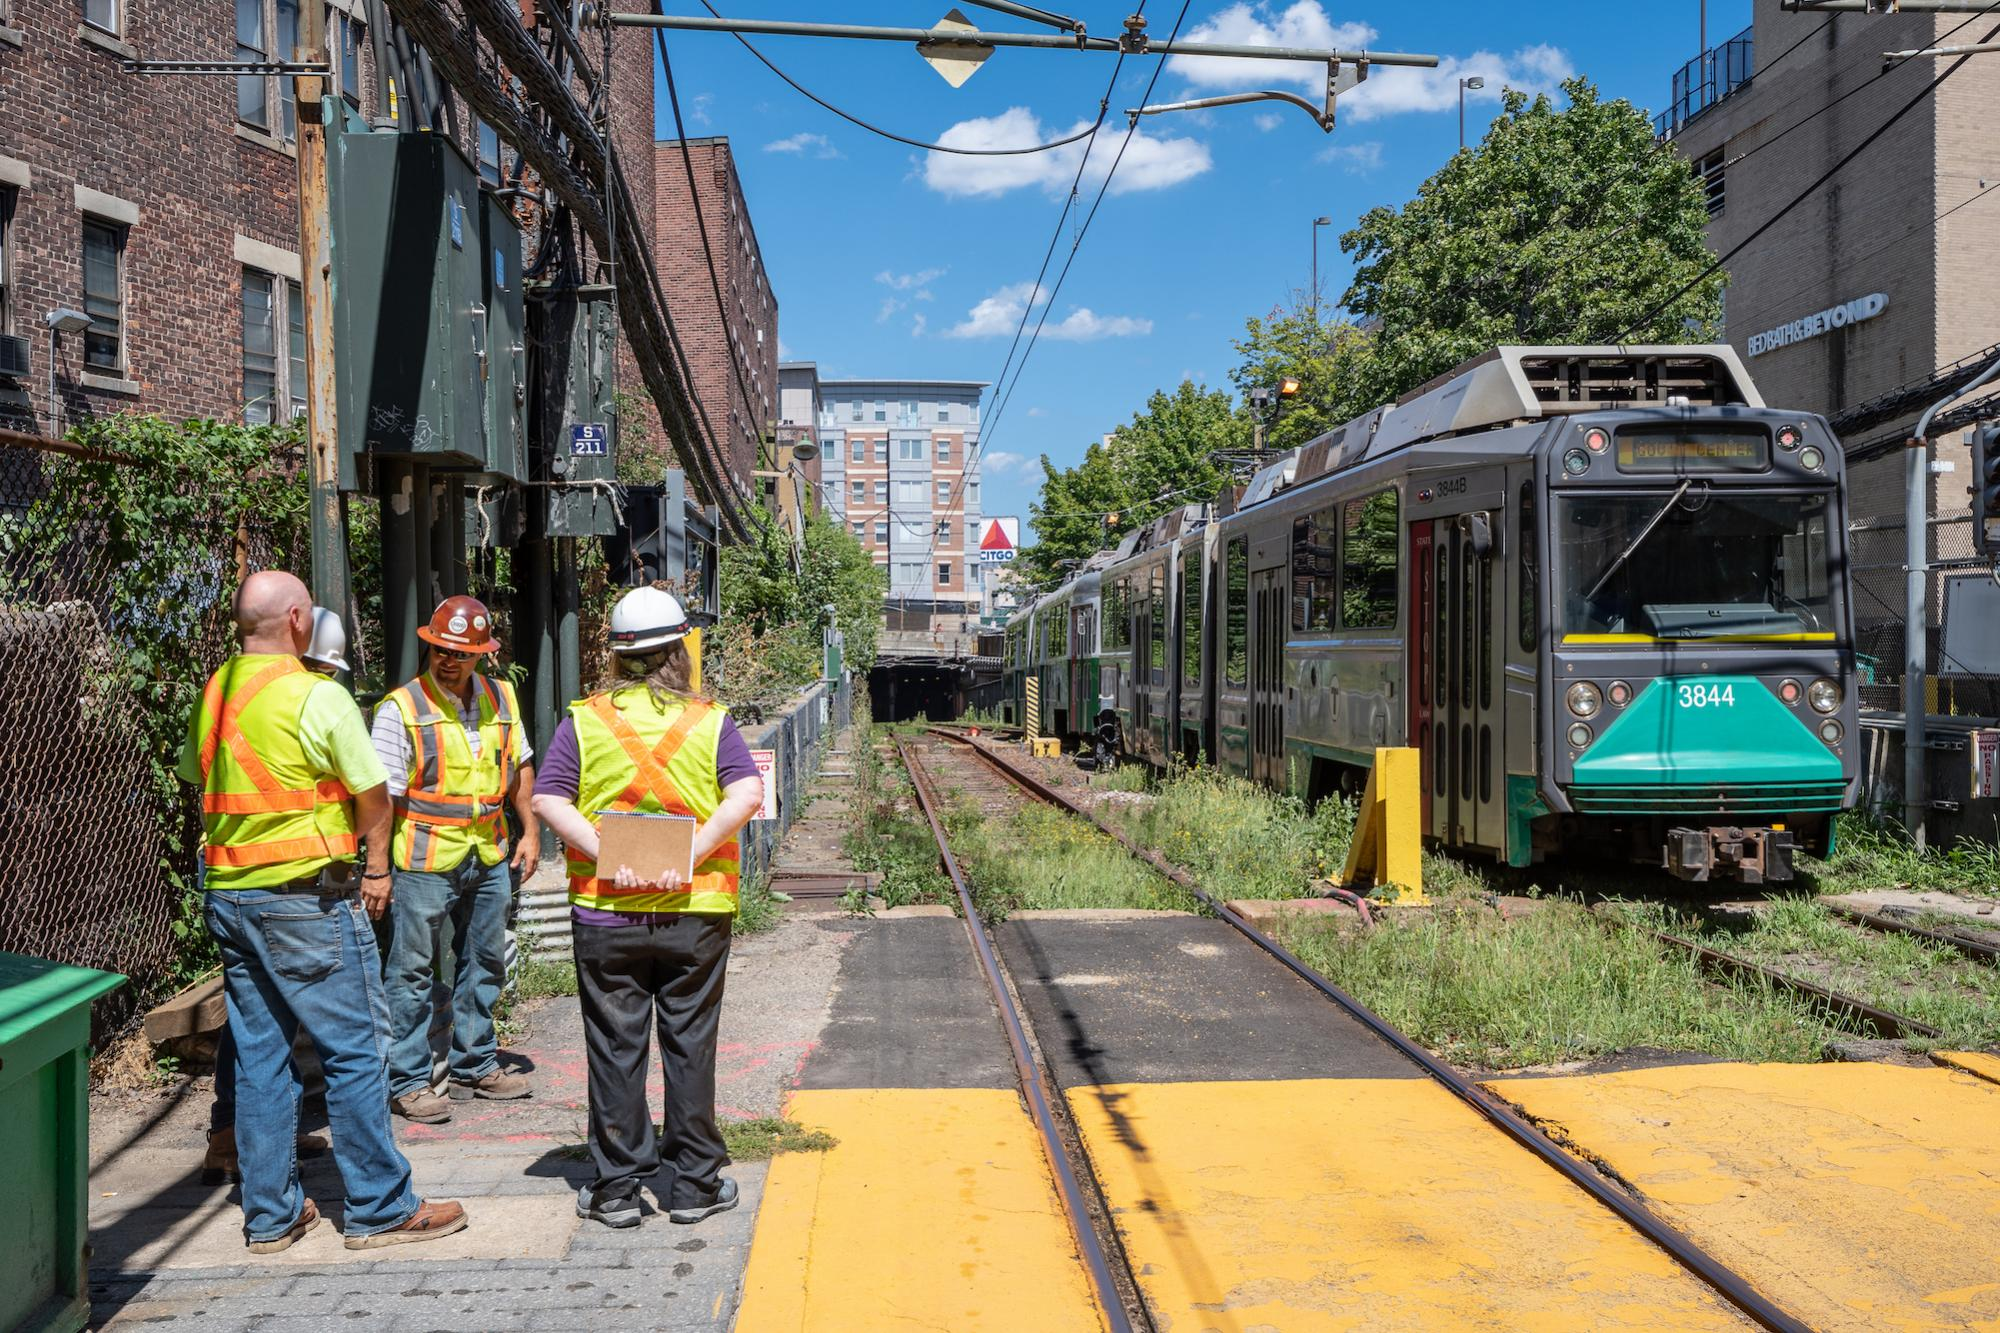 A crew at Fenway Station, as a Green Line train passes through